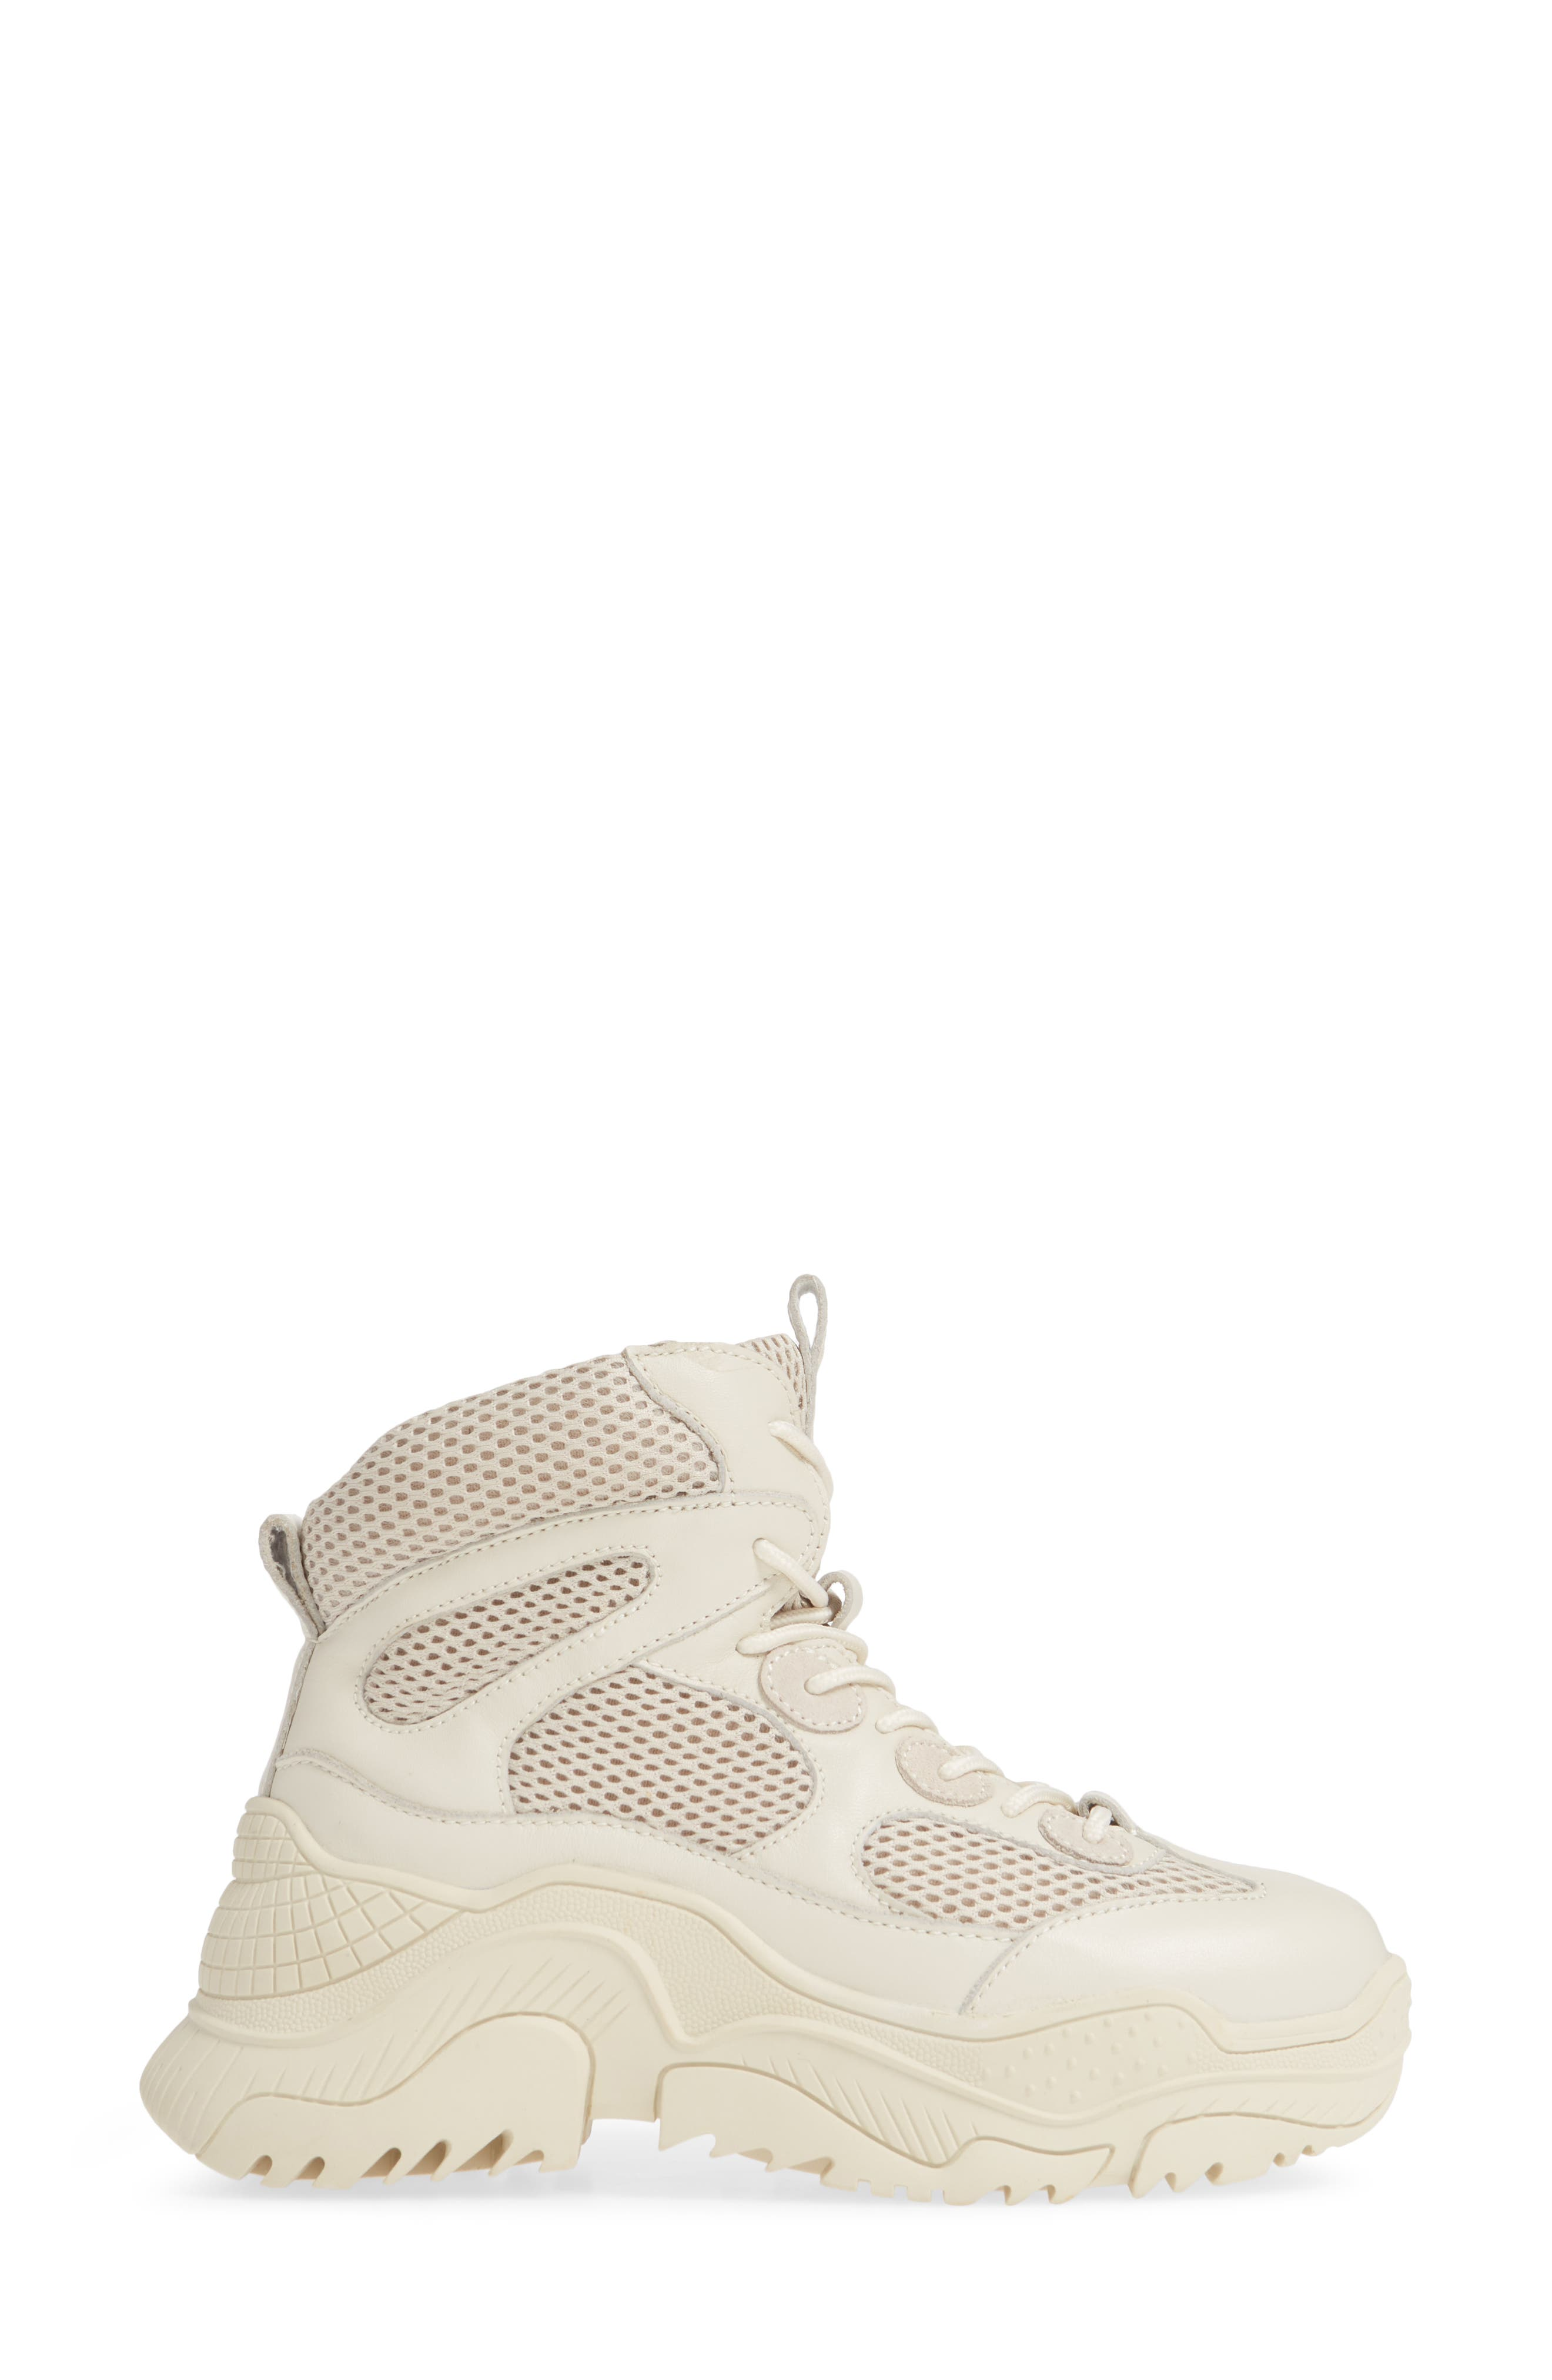 Pyro Wedge Sneaker Boot,                             Alternate thumbnail 3, color,                             OFF WHITE COMBO